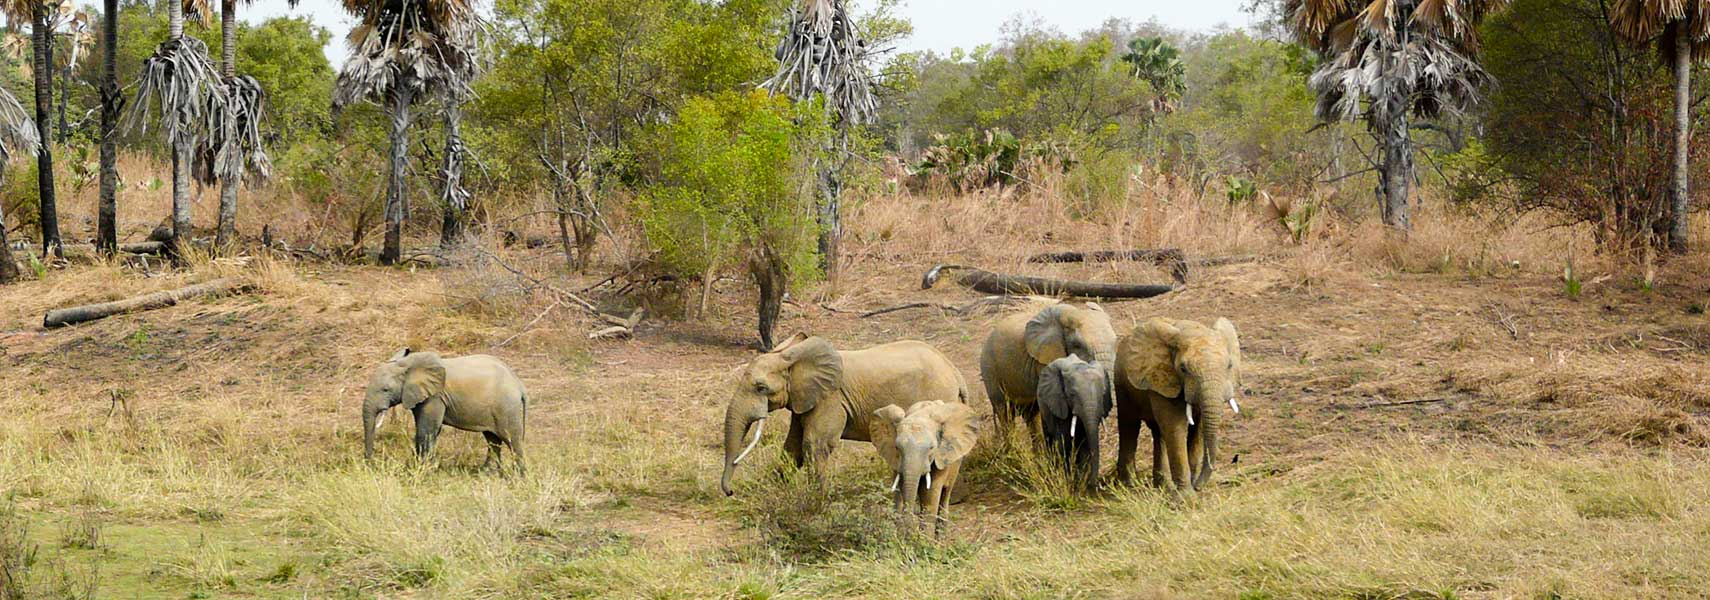 Elephants at Pendjari National Park in Benin